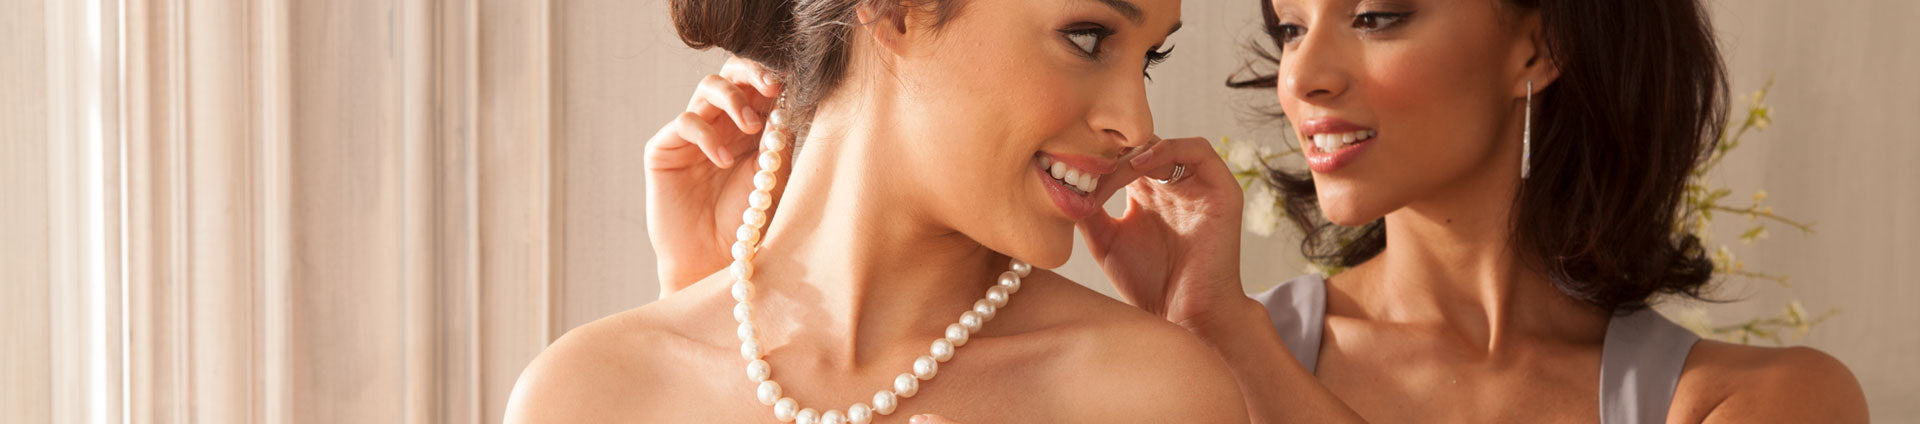 Pearl Necklaces - By Price: Highest to Lowest